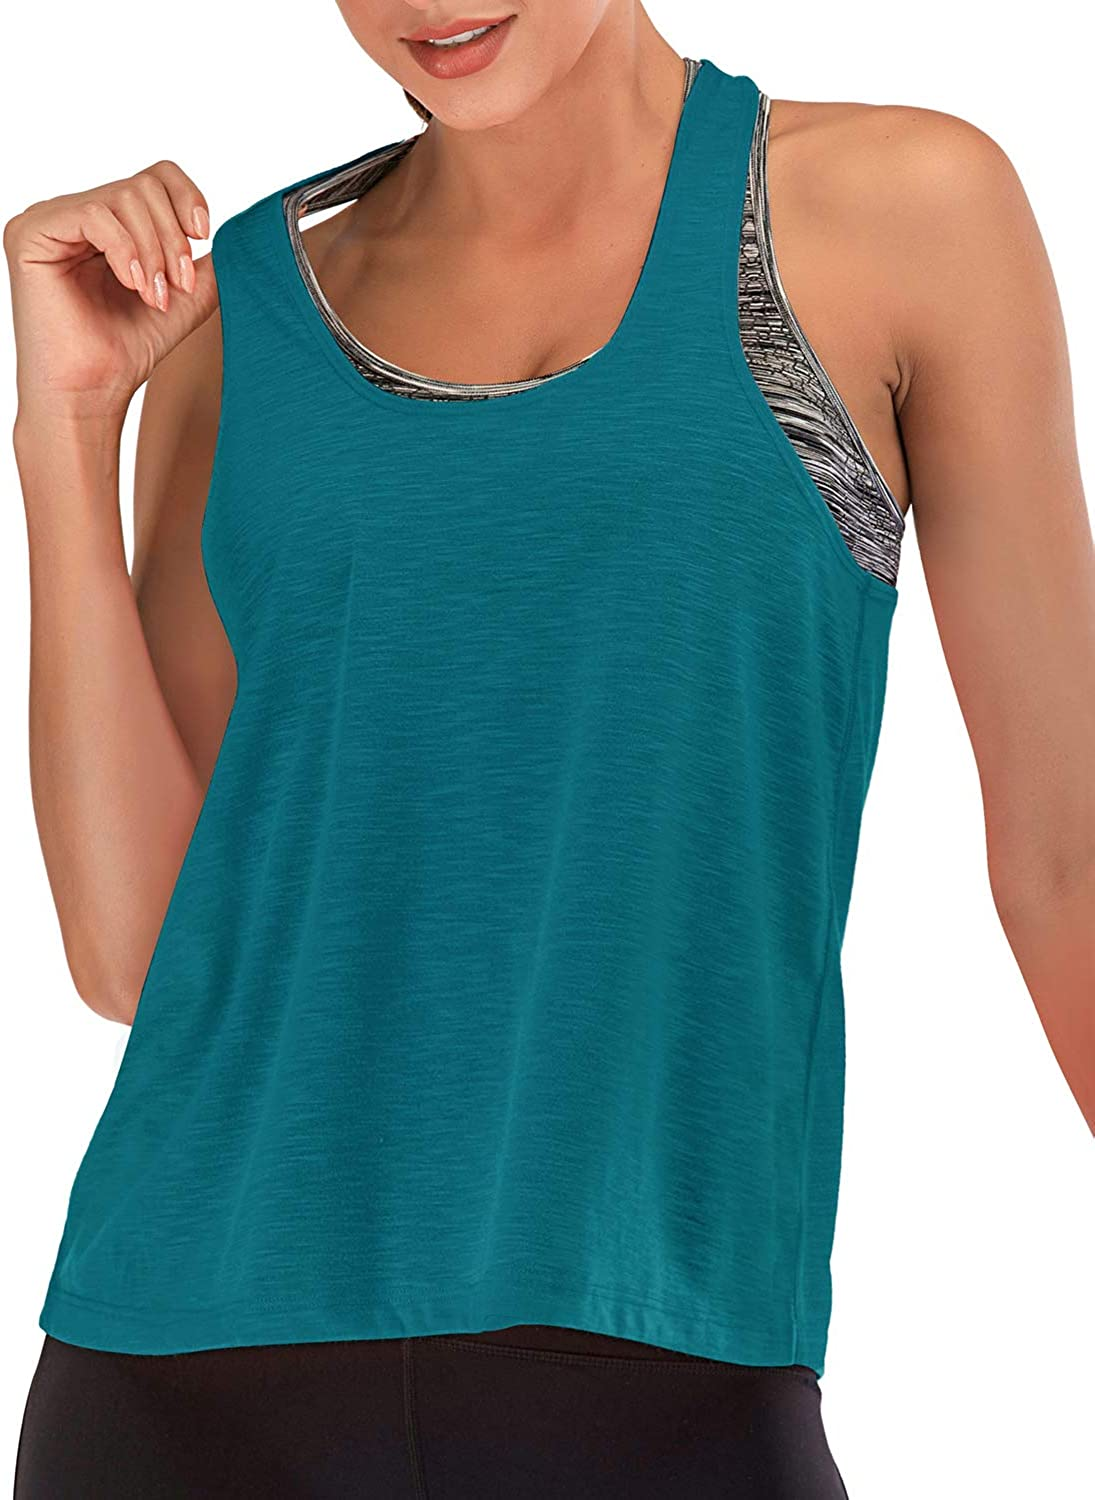 FAFAIR Workout Top With Bra Gym Tank Top Women Loose Racerback Yoga Vest Tops Running Athletic Shirts